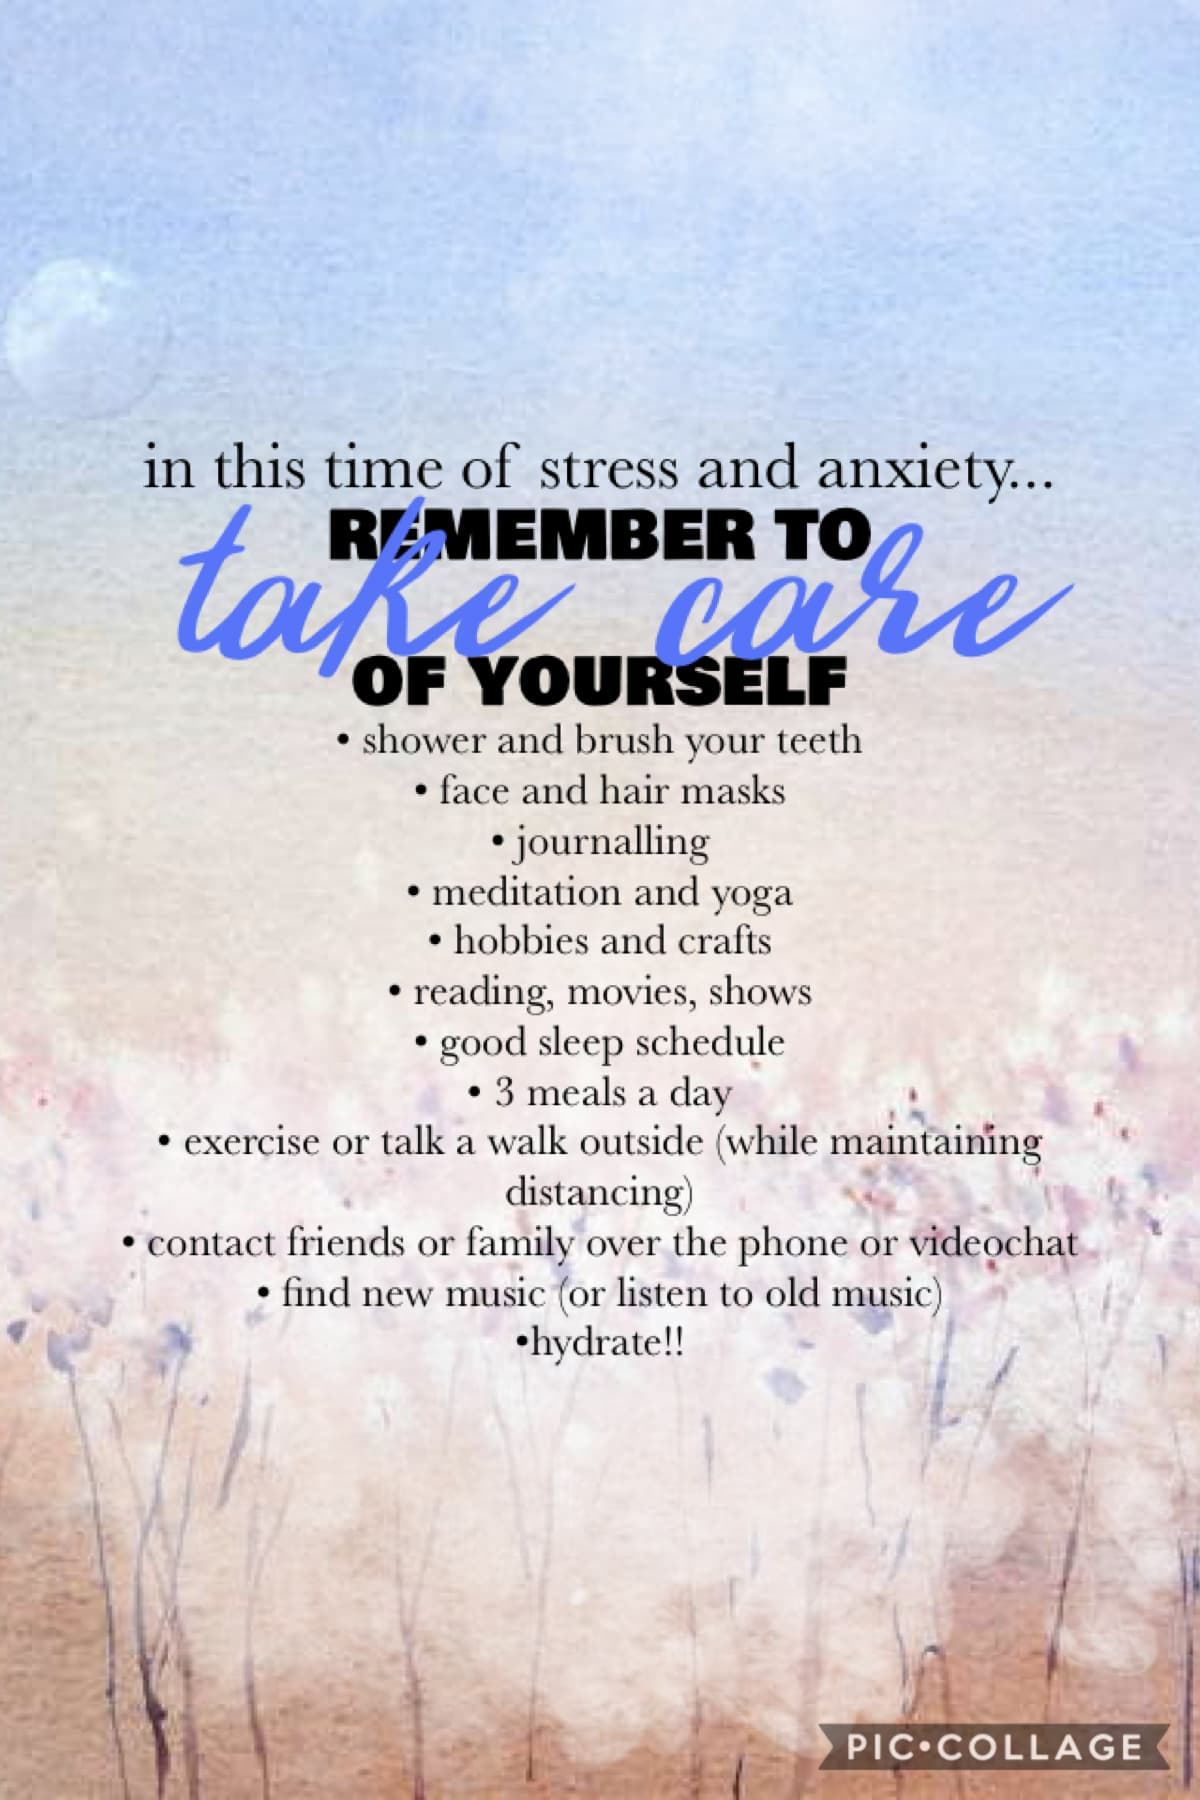 The virus is affecting everyone differently and may be causing more anxiety and hurting your mental health so remember to take care of yourself!💕 —side note: Sorry if I take long to respond!—